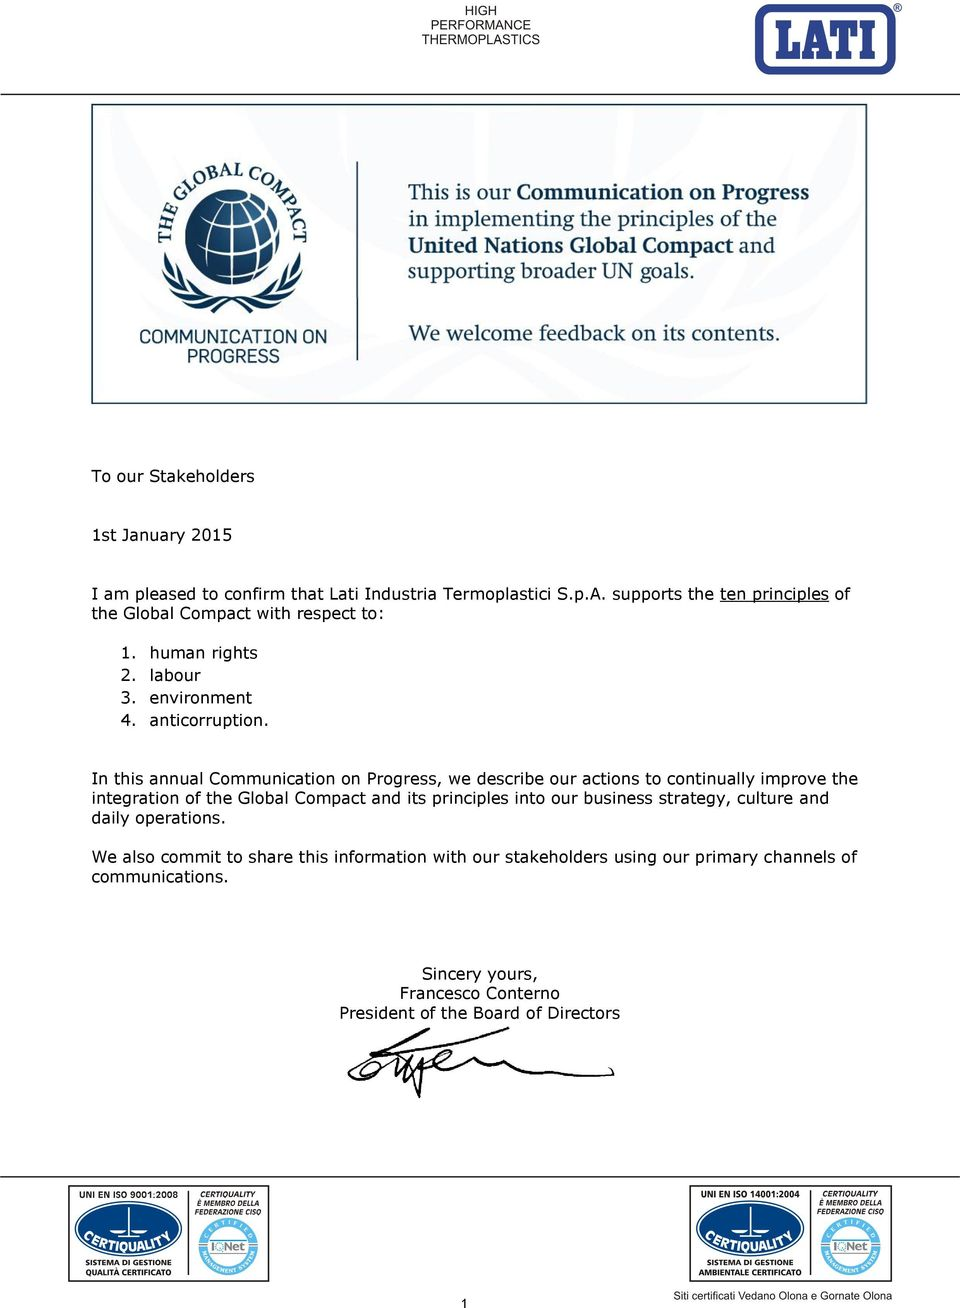 In this annual Communication on Progress, we describe our actions to continually improve the integration of the Global Compact and its principles into